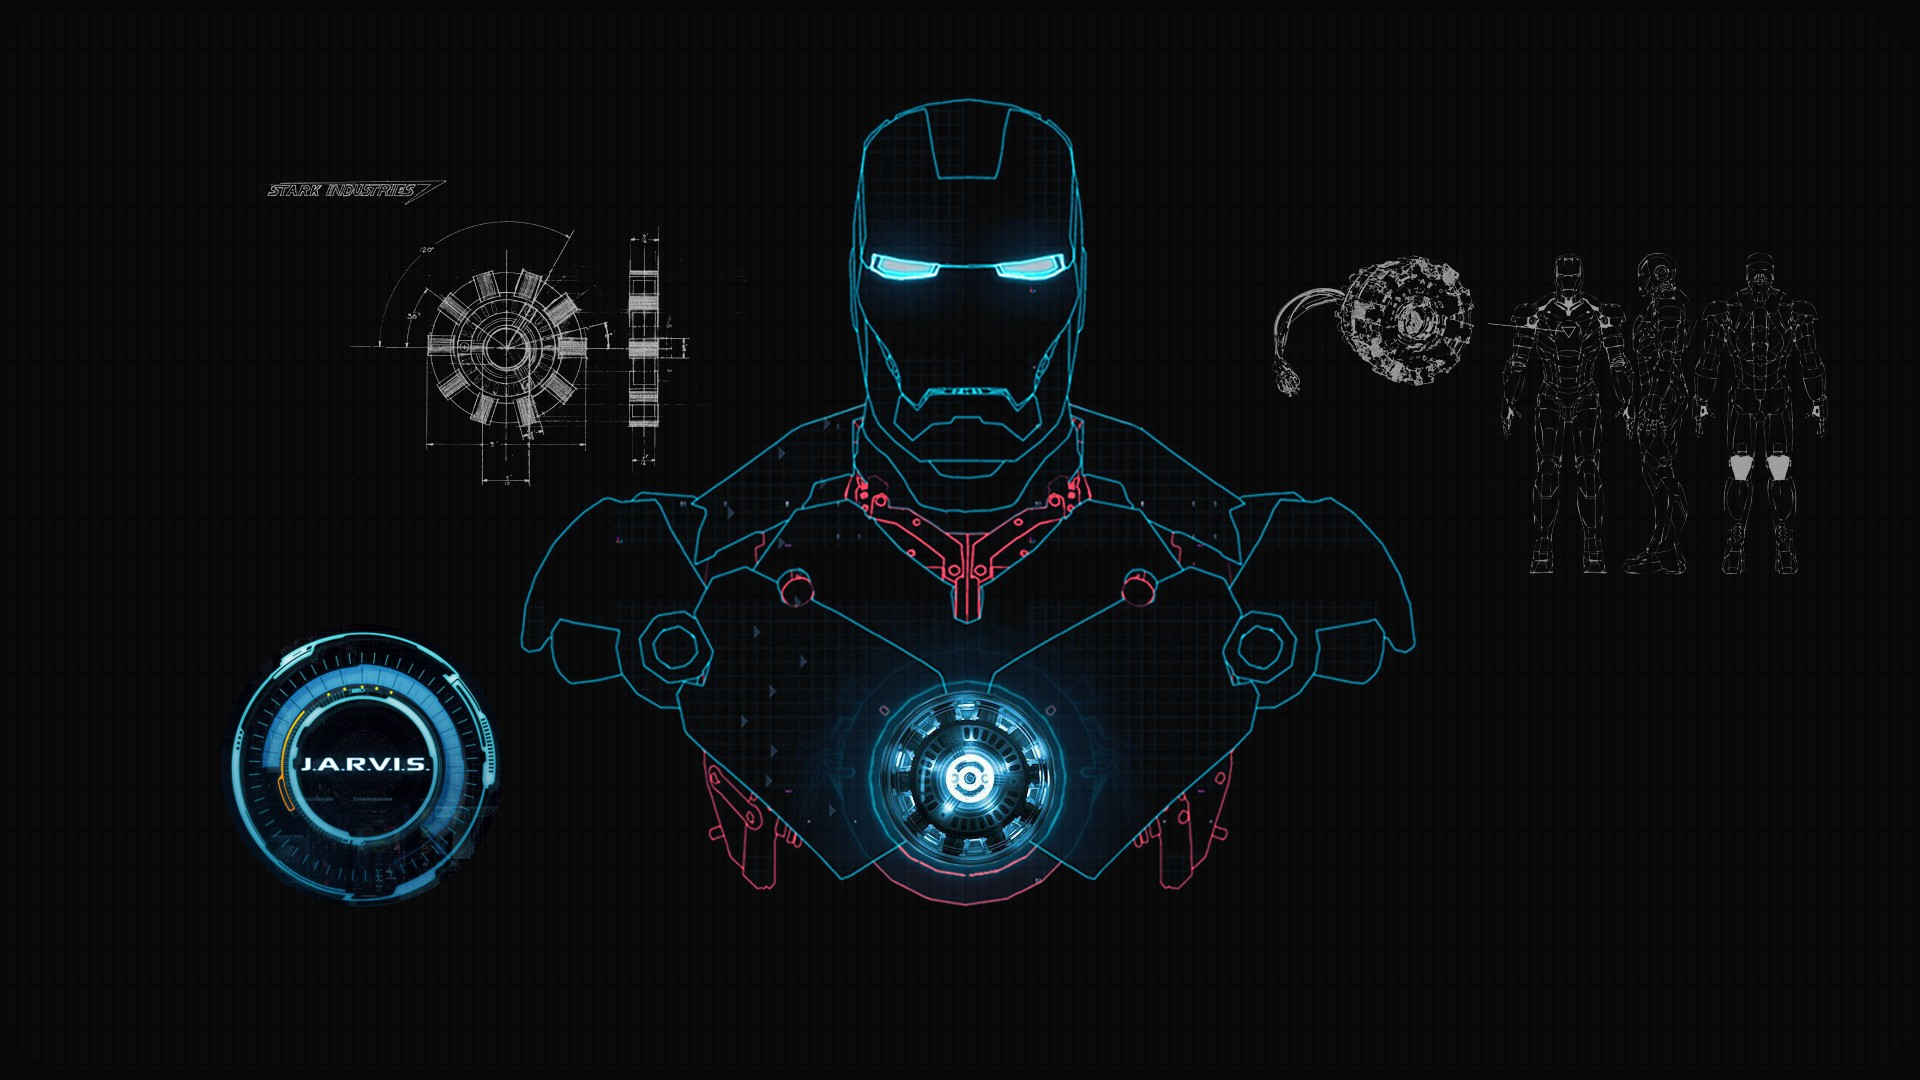 iron man art nexus 7samsung galaxy tab 10note android tablets